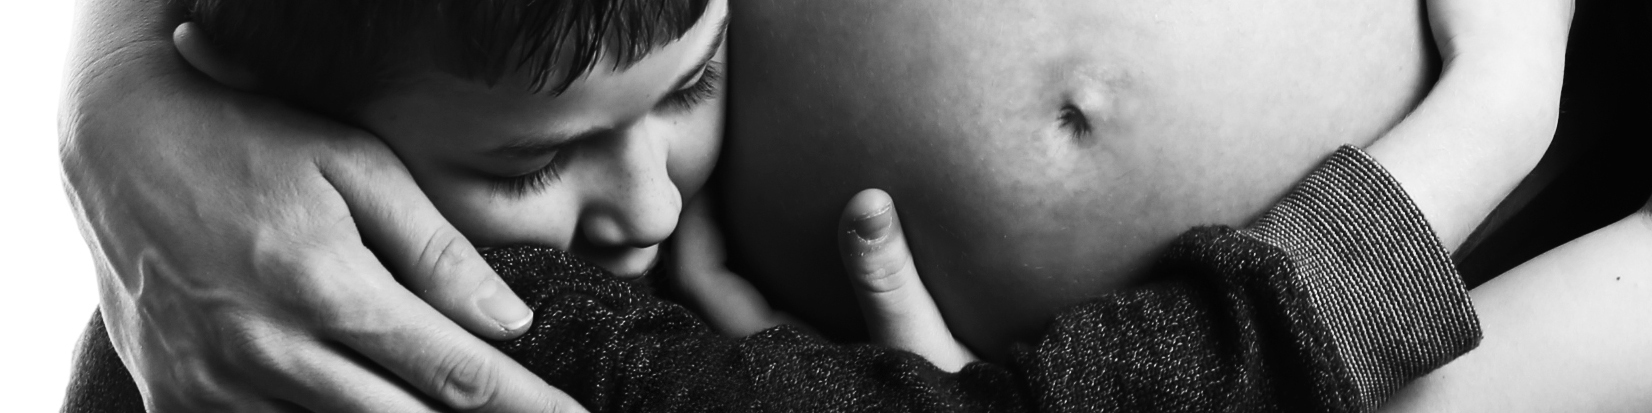 Maternity photograph of a toddler hugging mothers belly